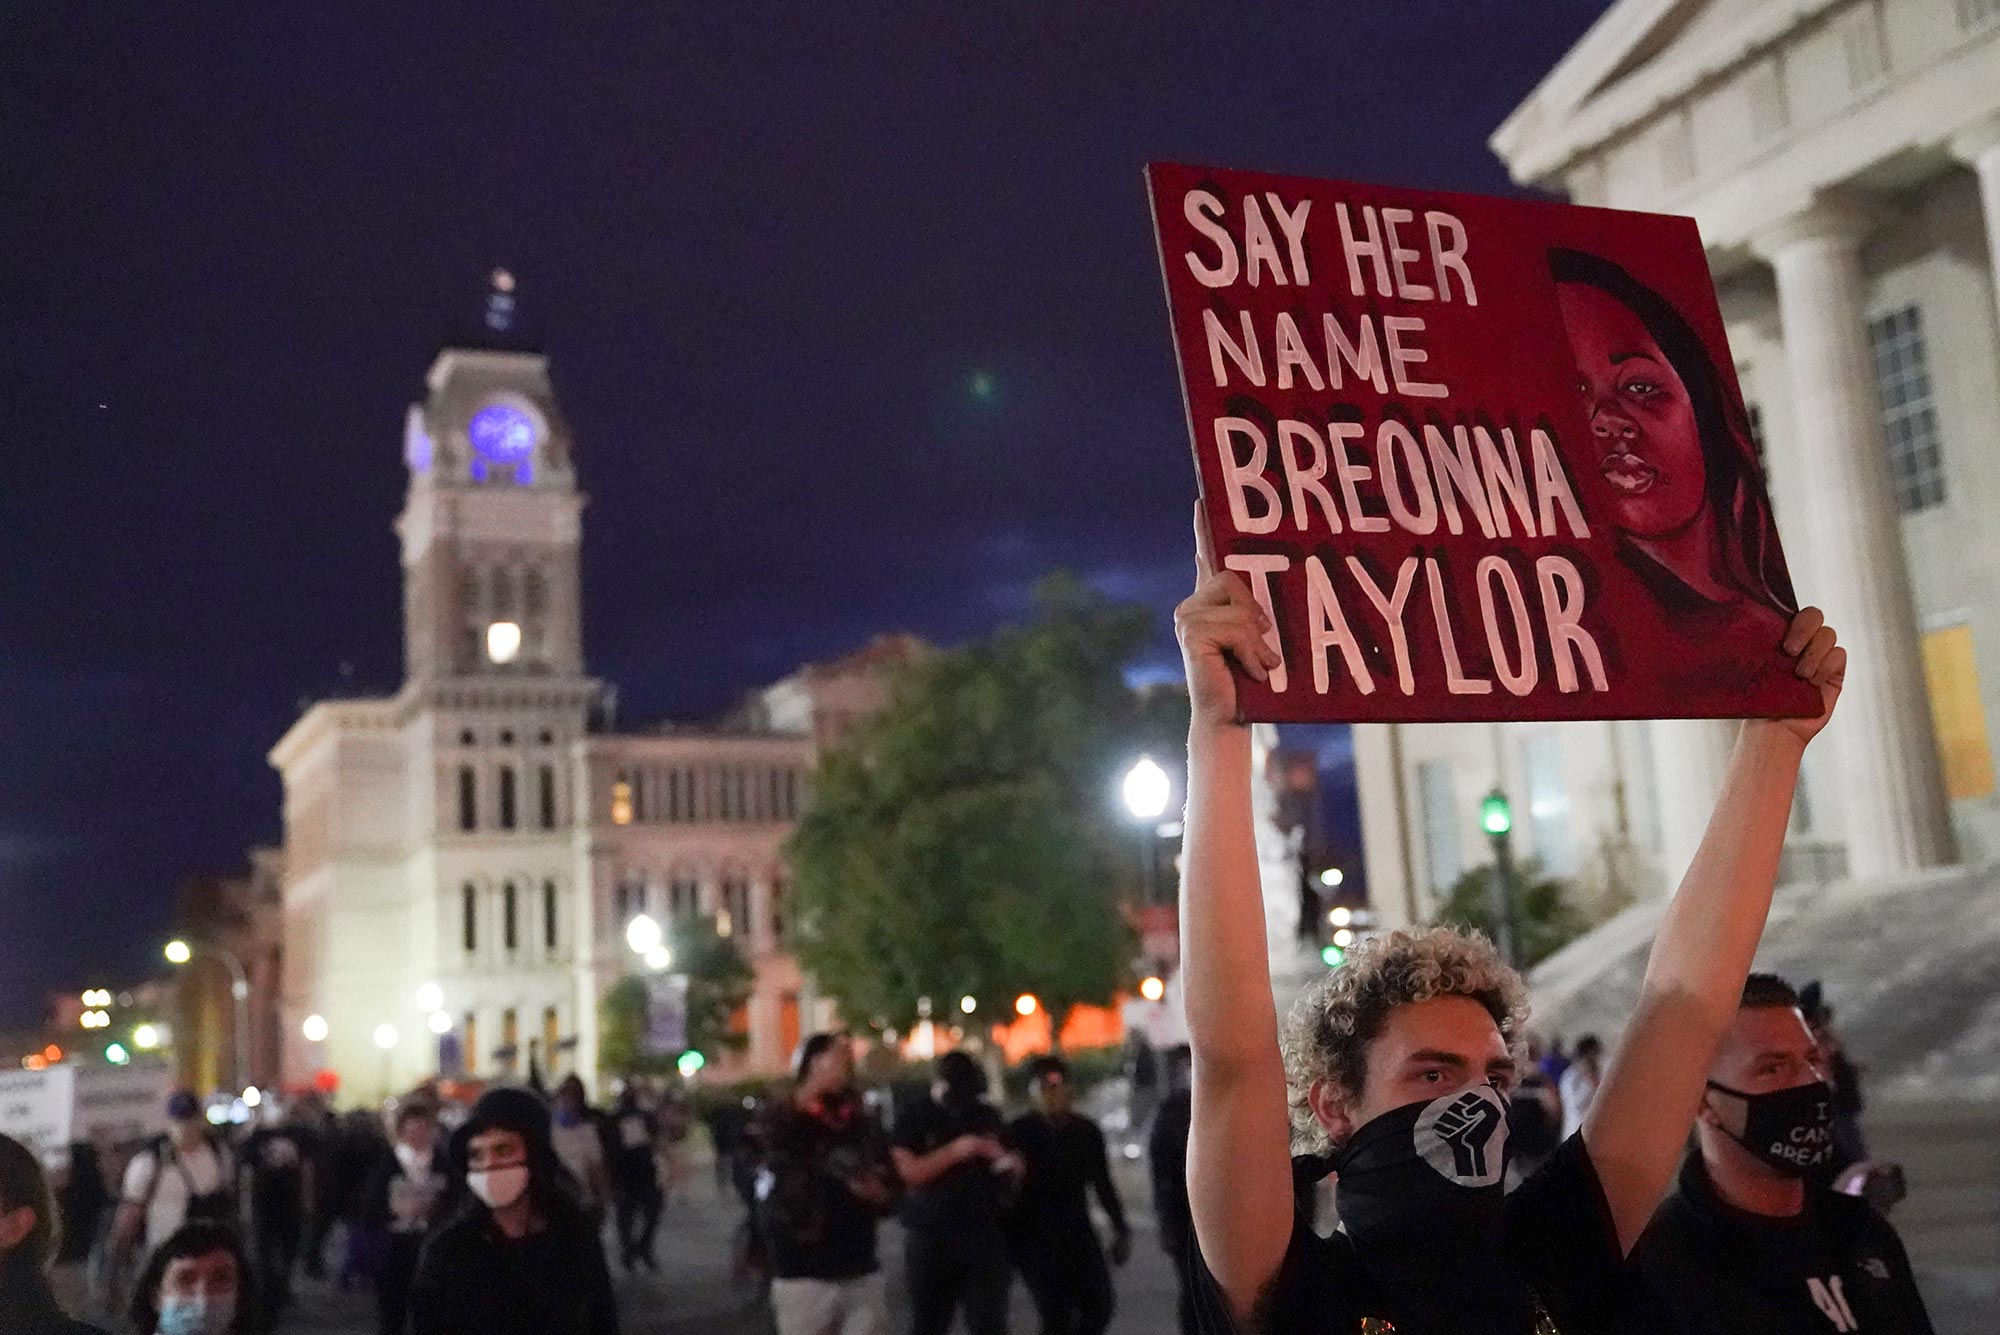 "Photo of a protestor holding a red sign that reads ""SAY HER NAME BREONNA TAYLOR"" during a September rally in Louisville, Kentucky. The protestor has a black power fist on their face mask, a crowd of people and a tall white building are seen behind them."